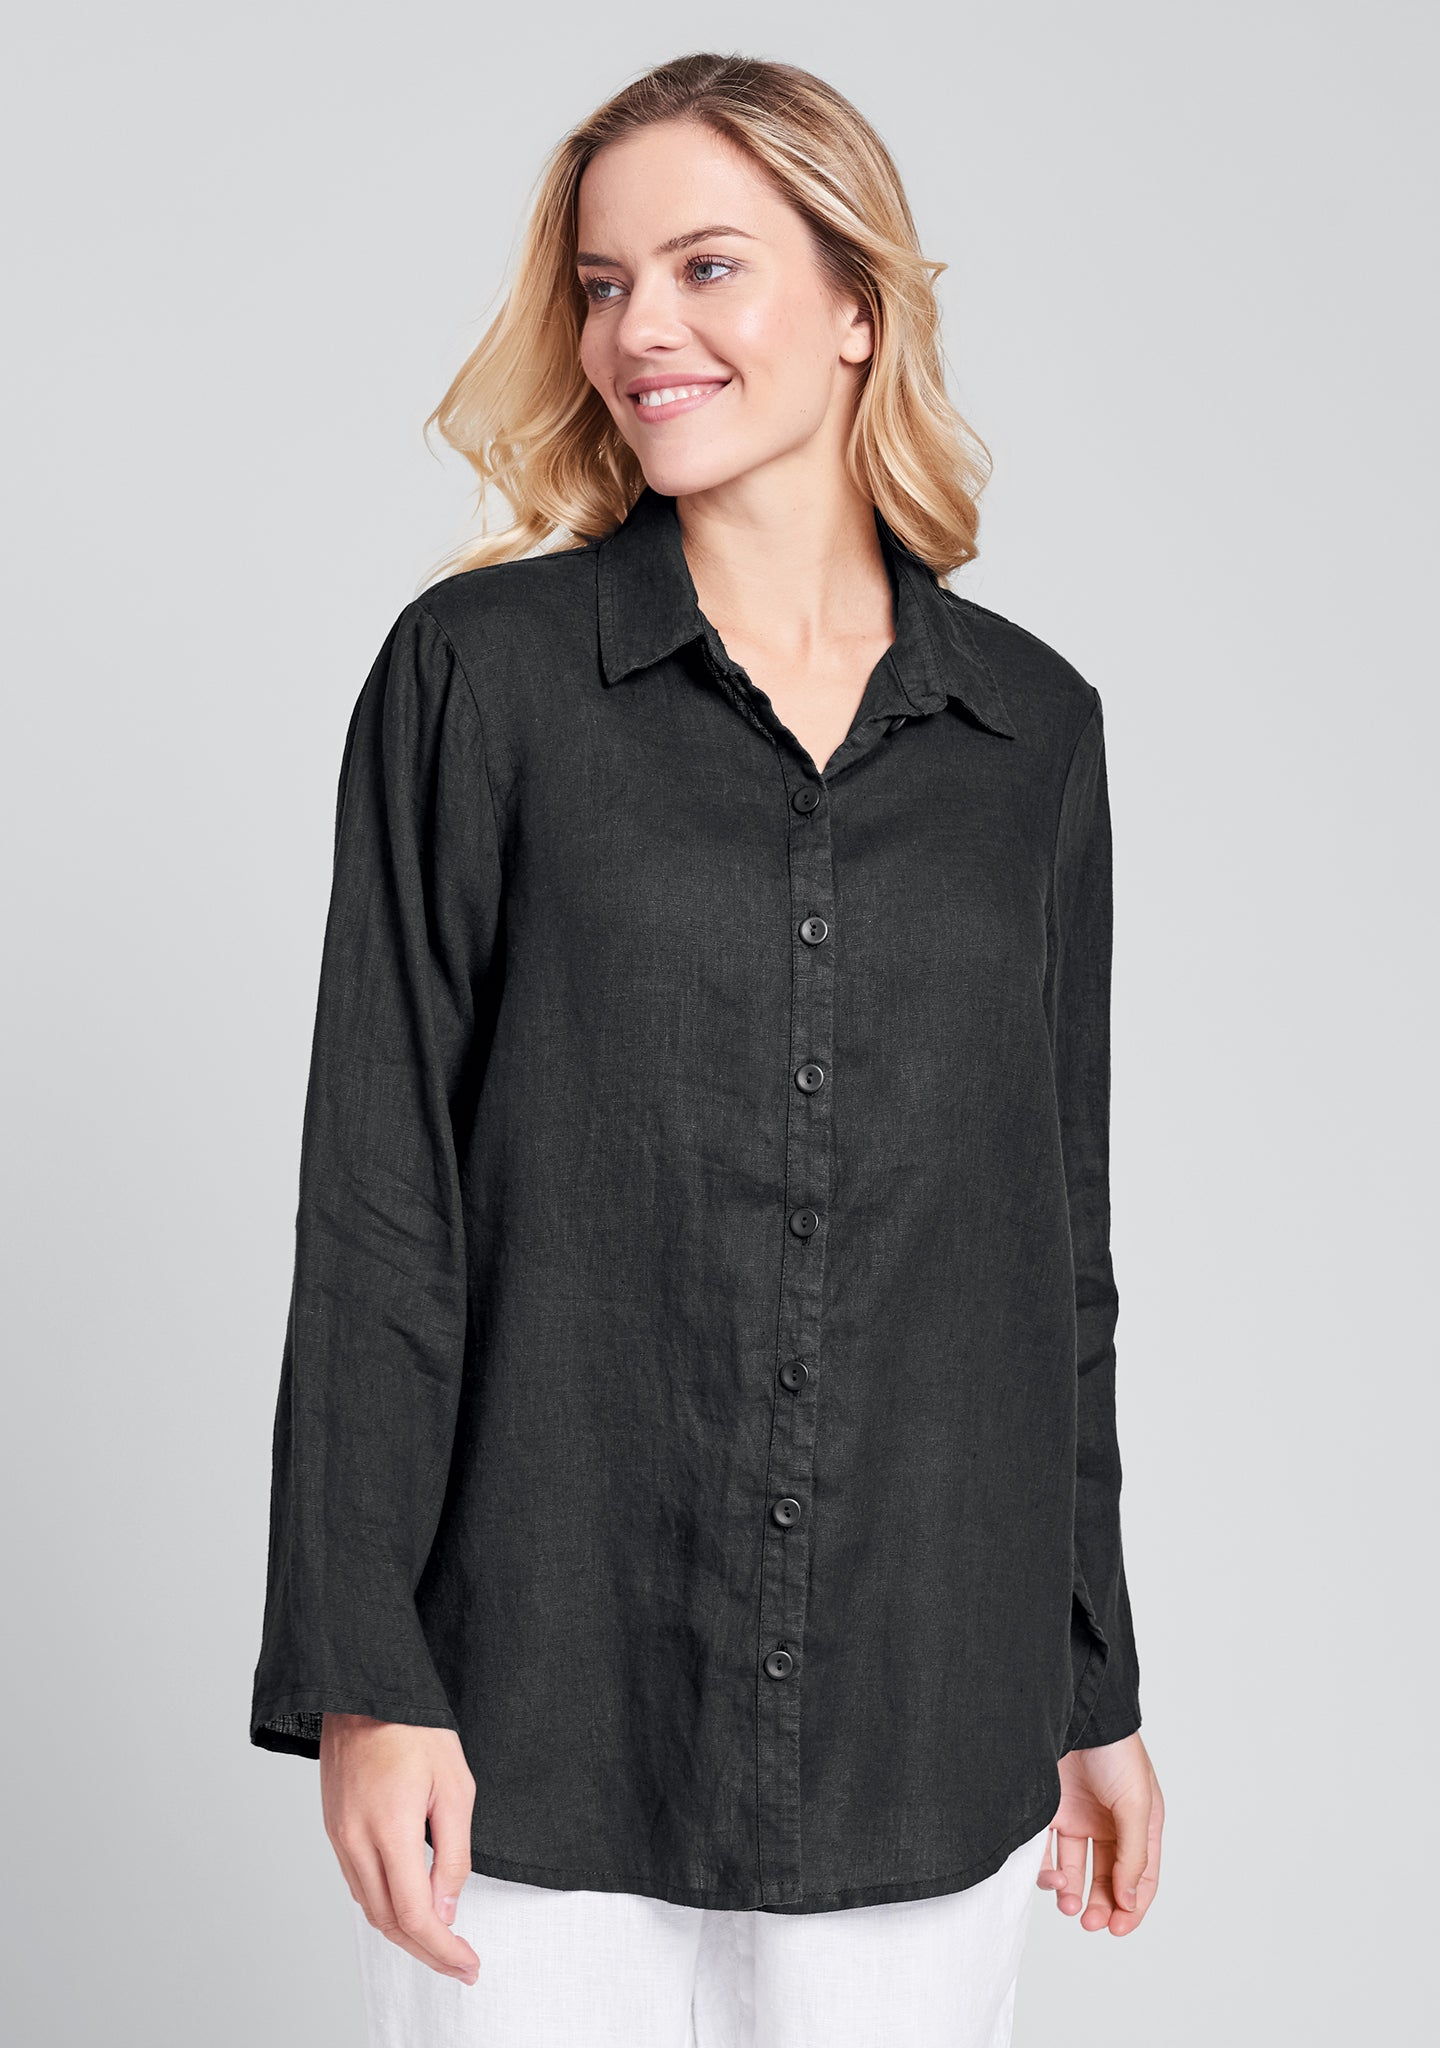 crossroads blouse linen button down shirt black